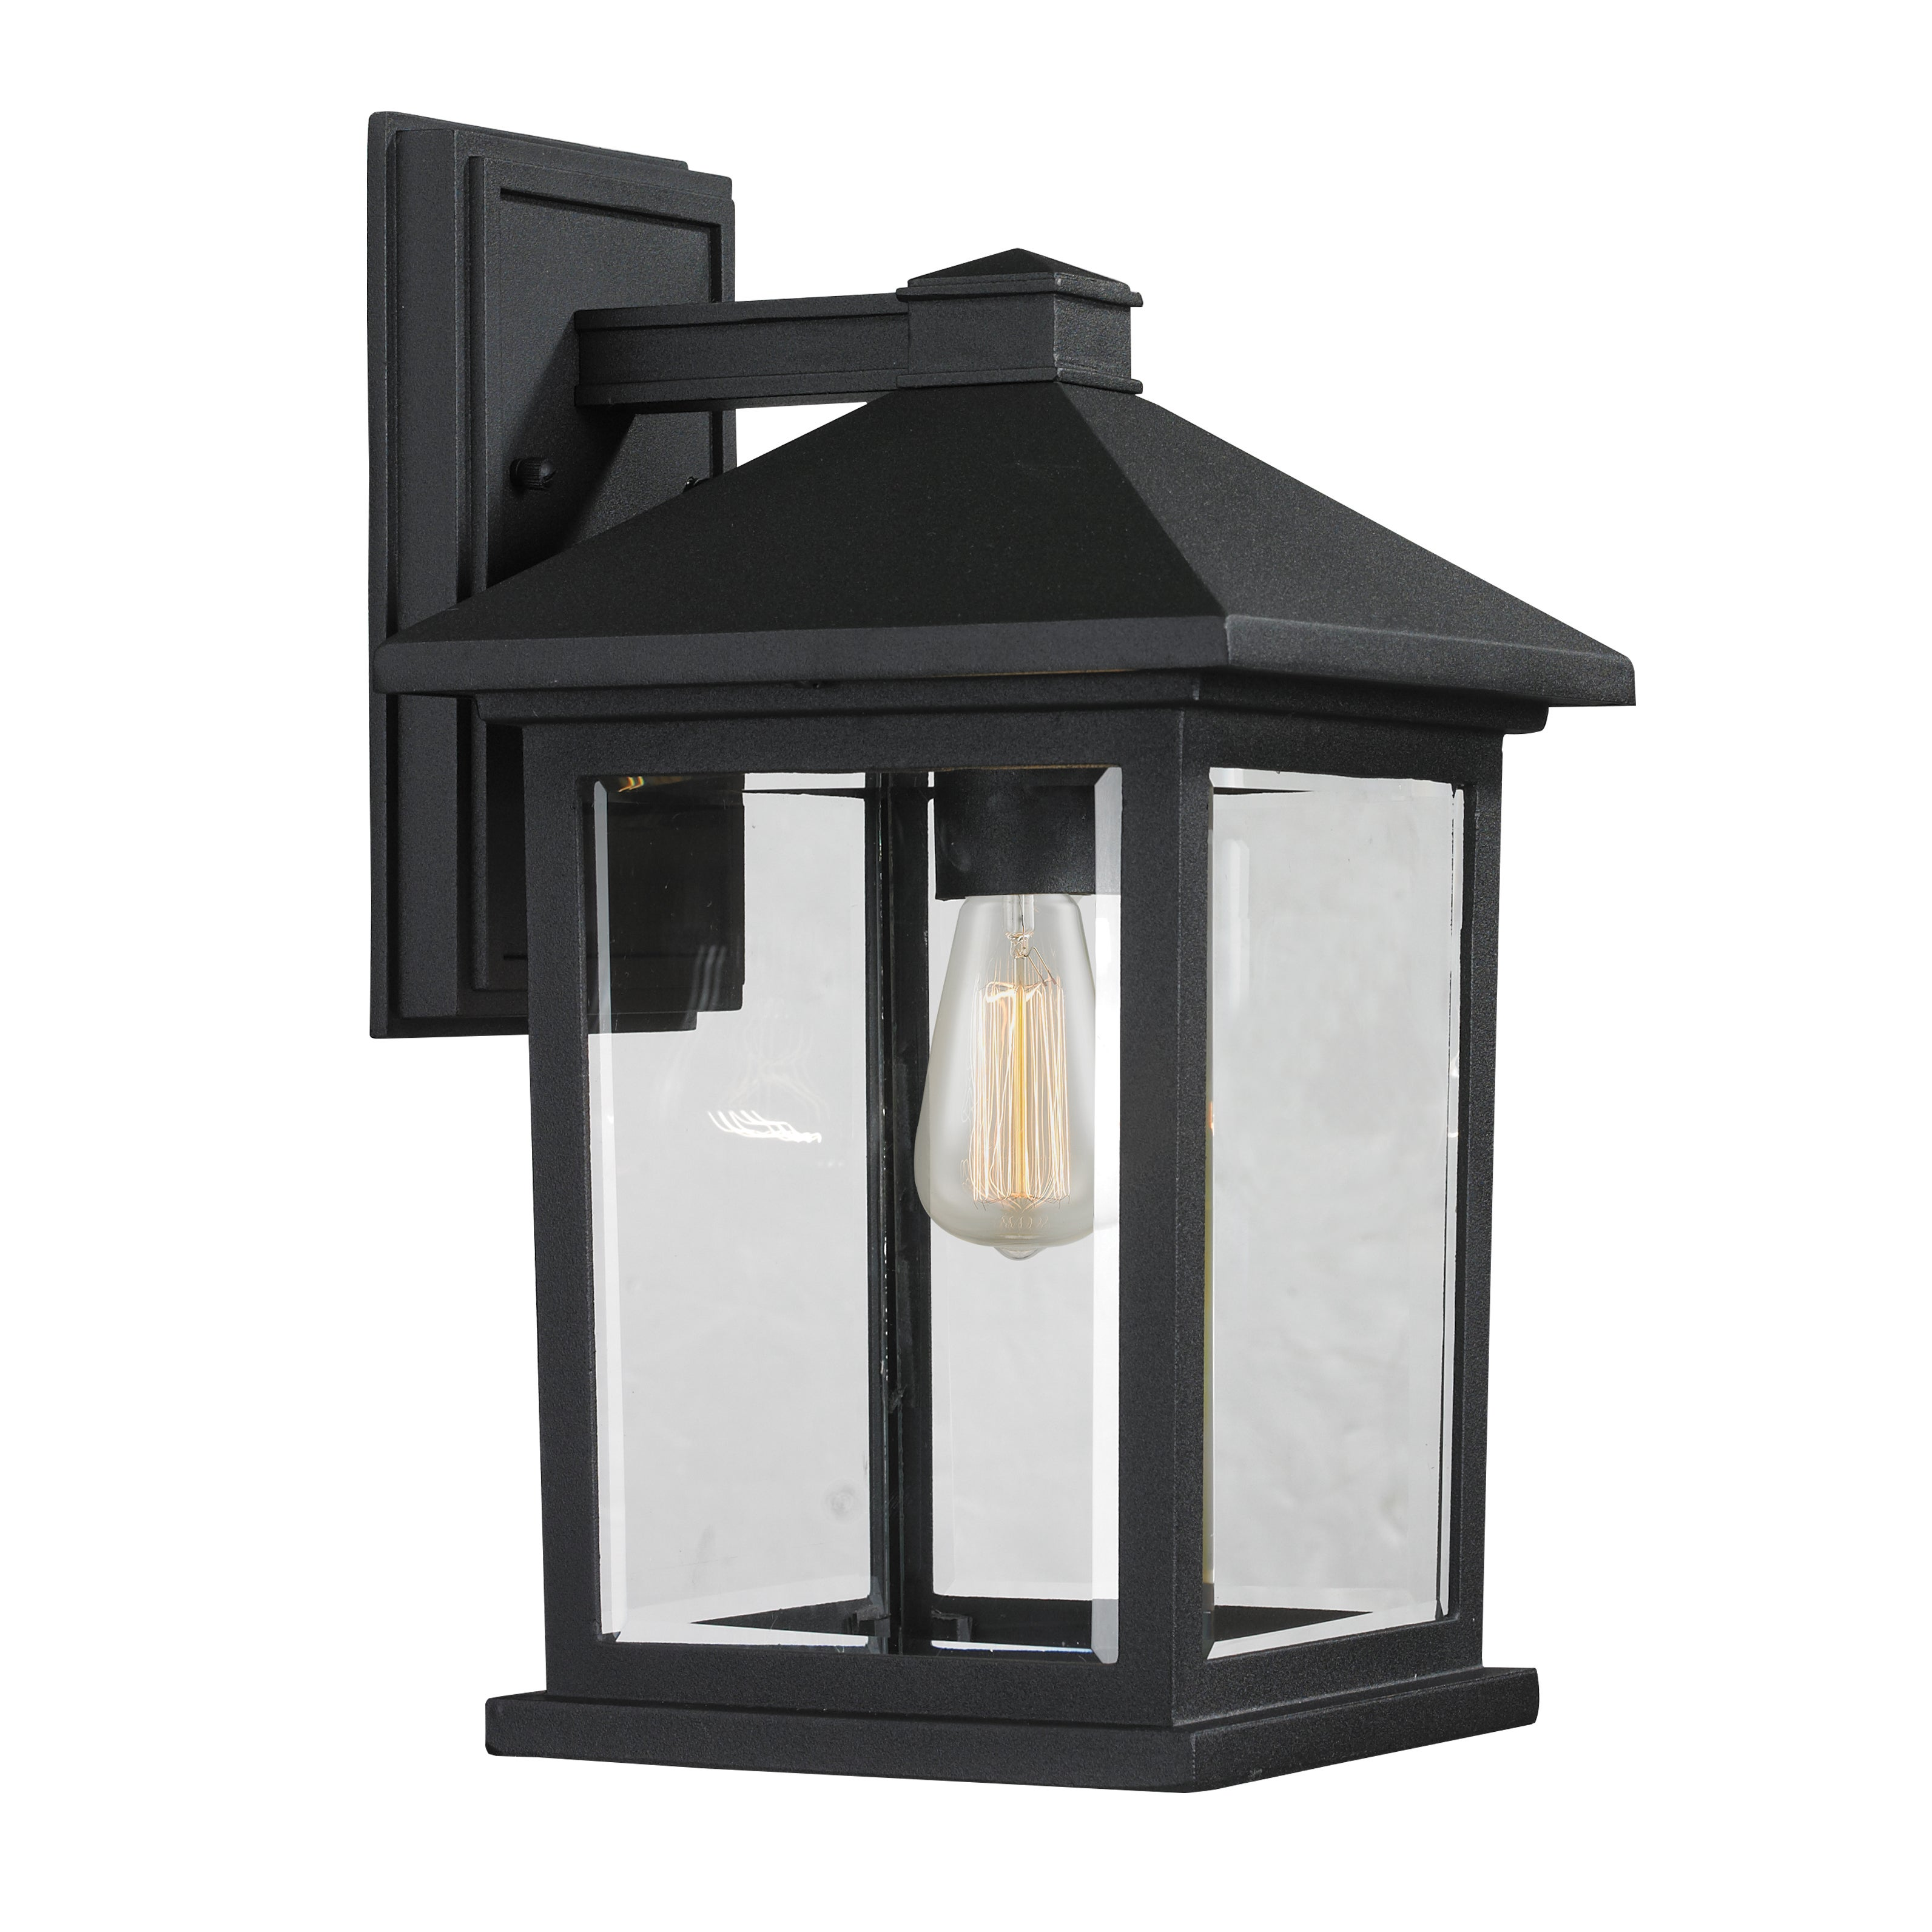 Shop portland 1 light matte black outdoor wall light on sale free shipping today overstock 9957891